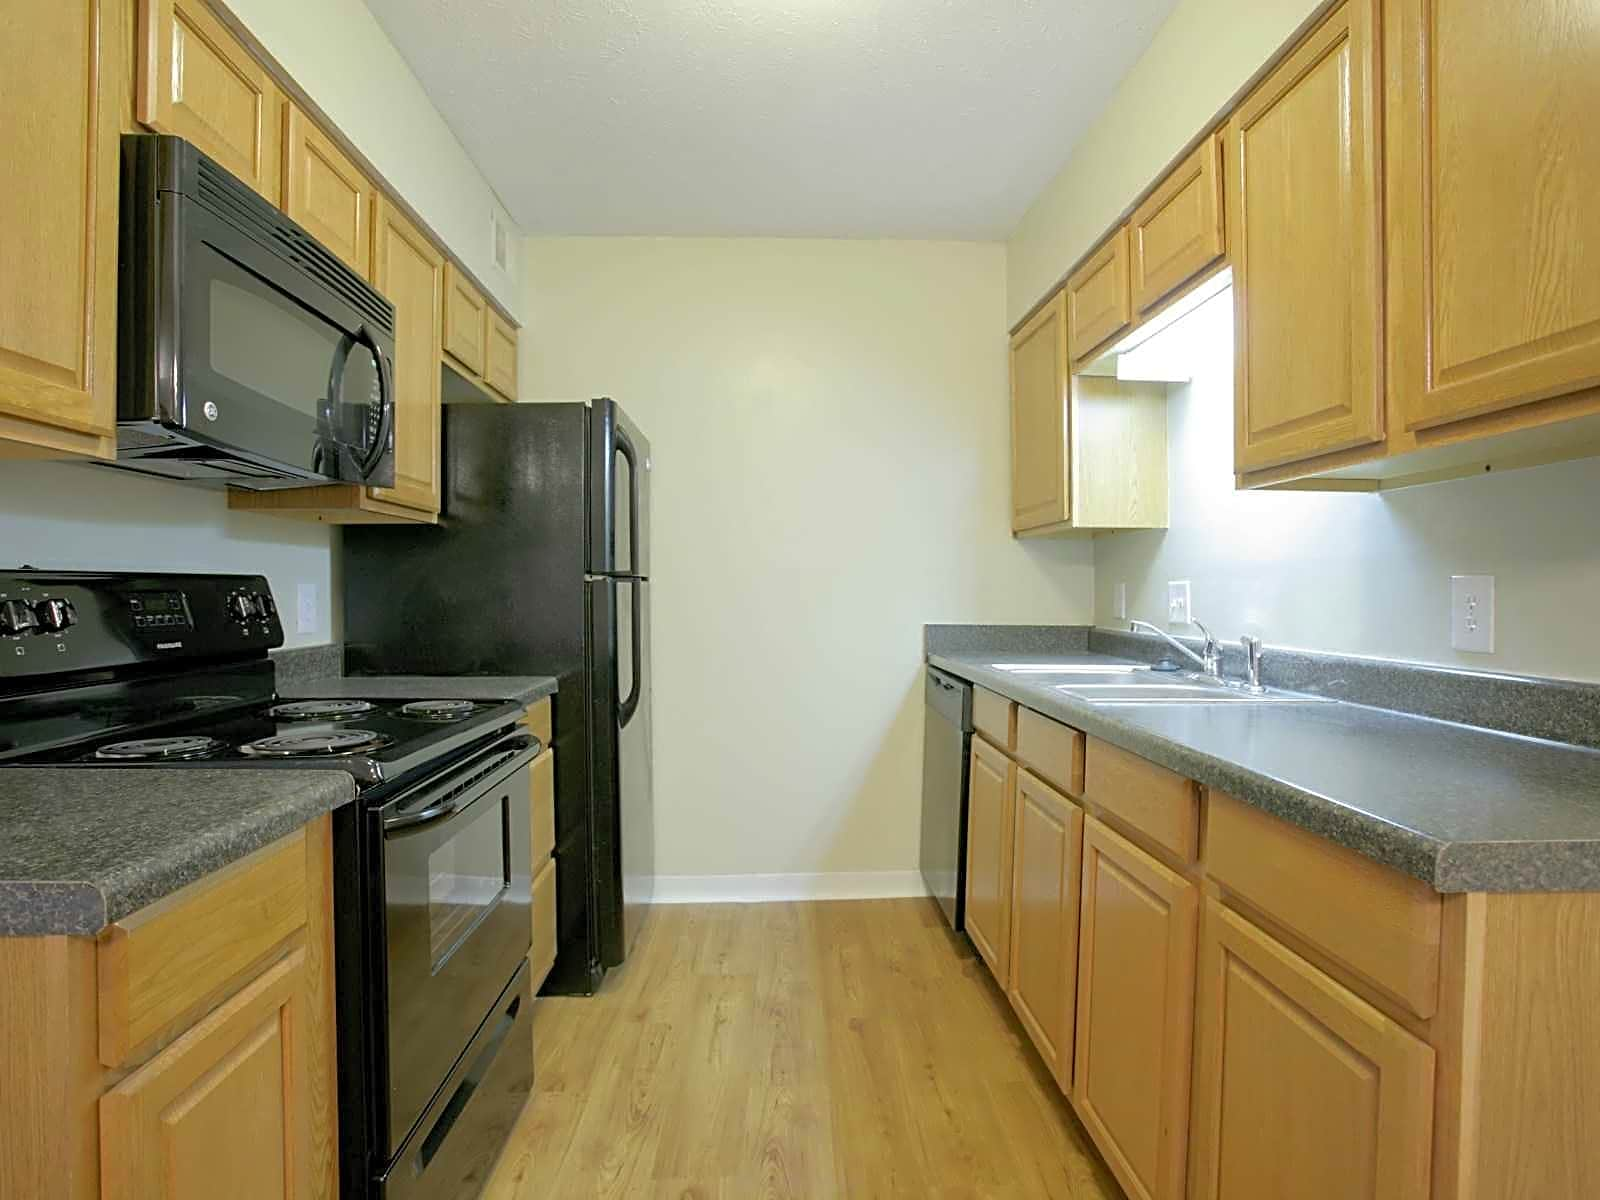 Apartments Near UofSC Briargate Condominiums for University of South Carolina Students in Columbia, SC